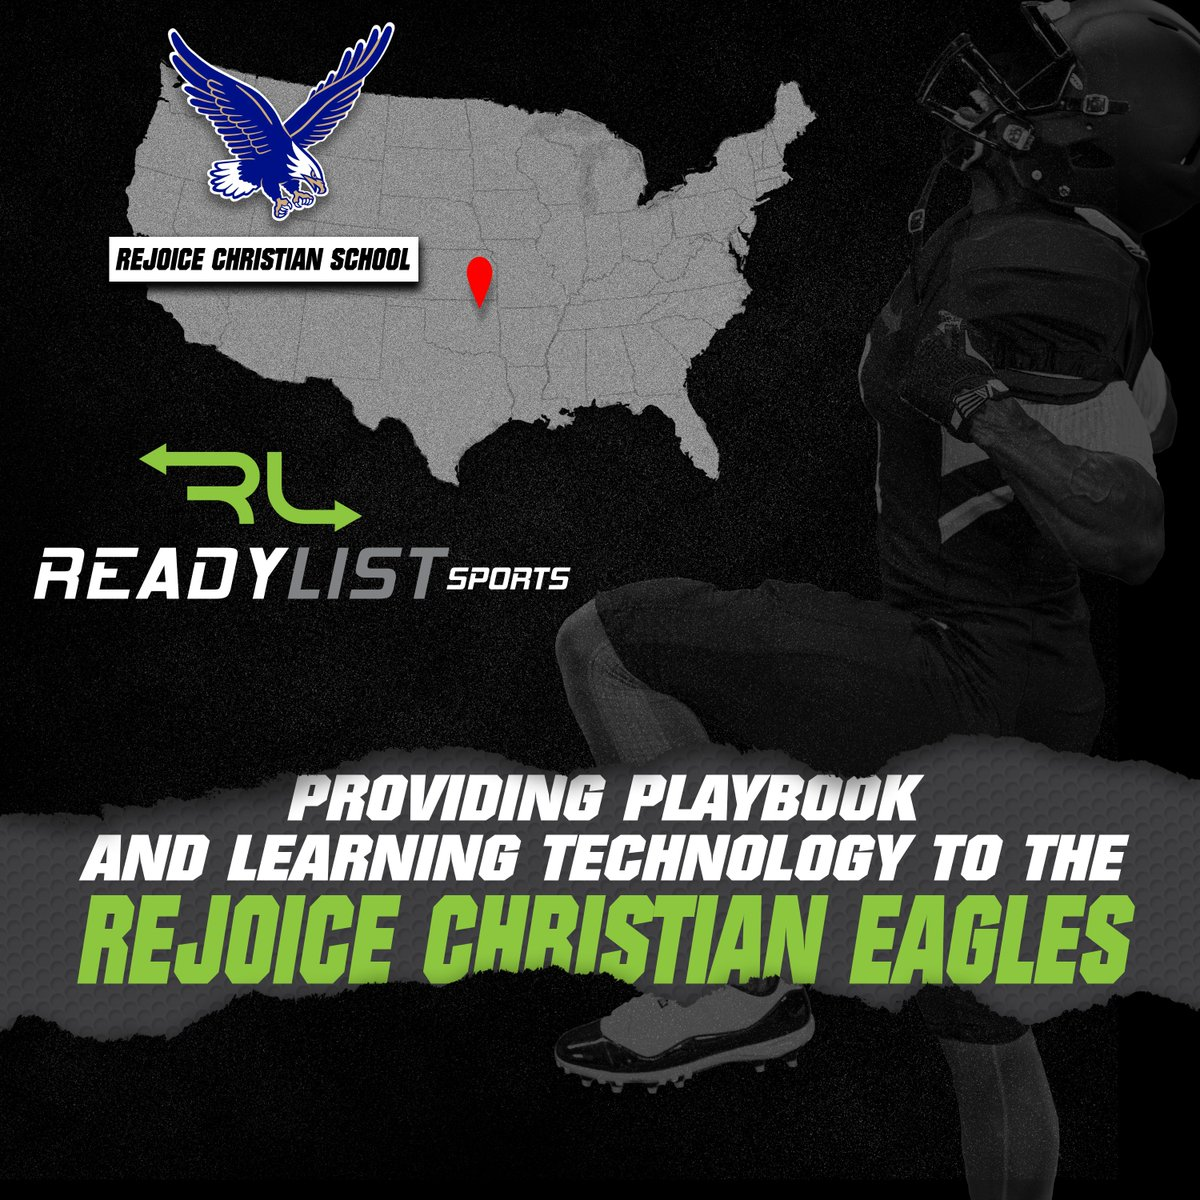 Extremely competitive program out of Oklahoma has joined the ReadyList Sports family. @RejoiceFootball went 13-1 the last 2 seasons, with consecutive trips to the playoff semifinals. #Getinyourplaybook #Football @CoachMarley https://t.co/q2TPXEHwpR